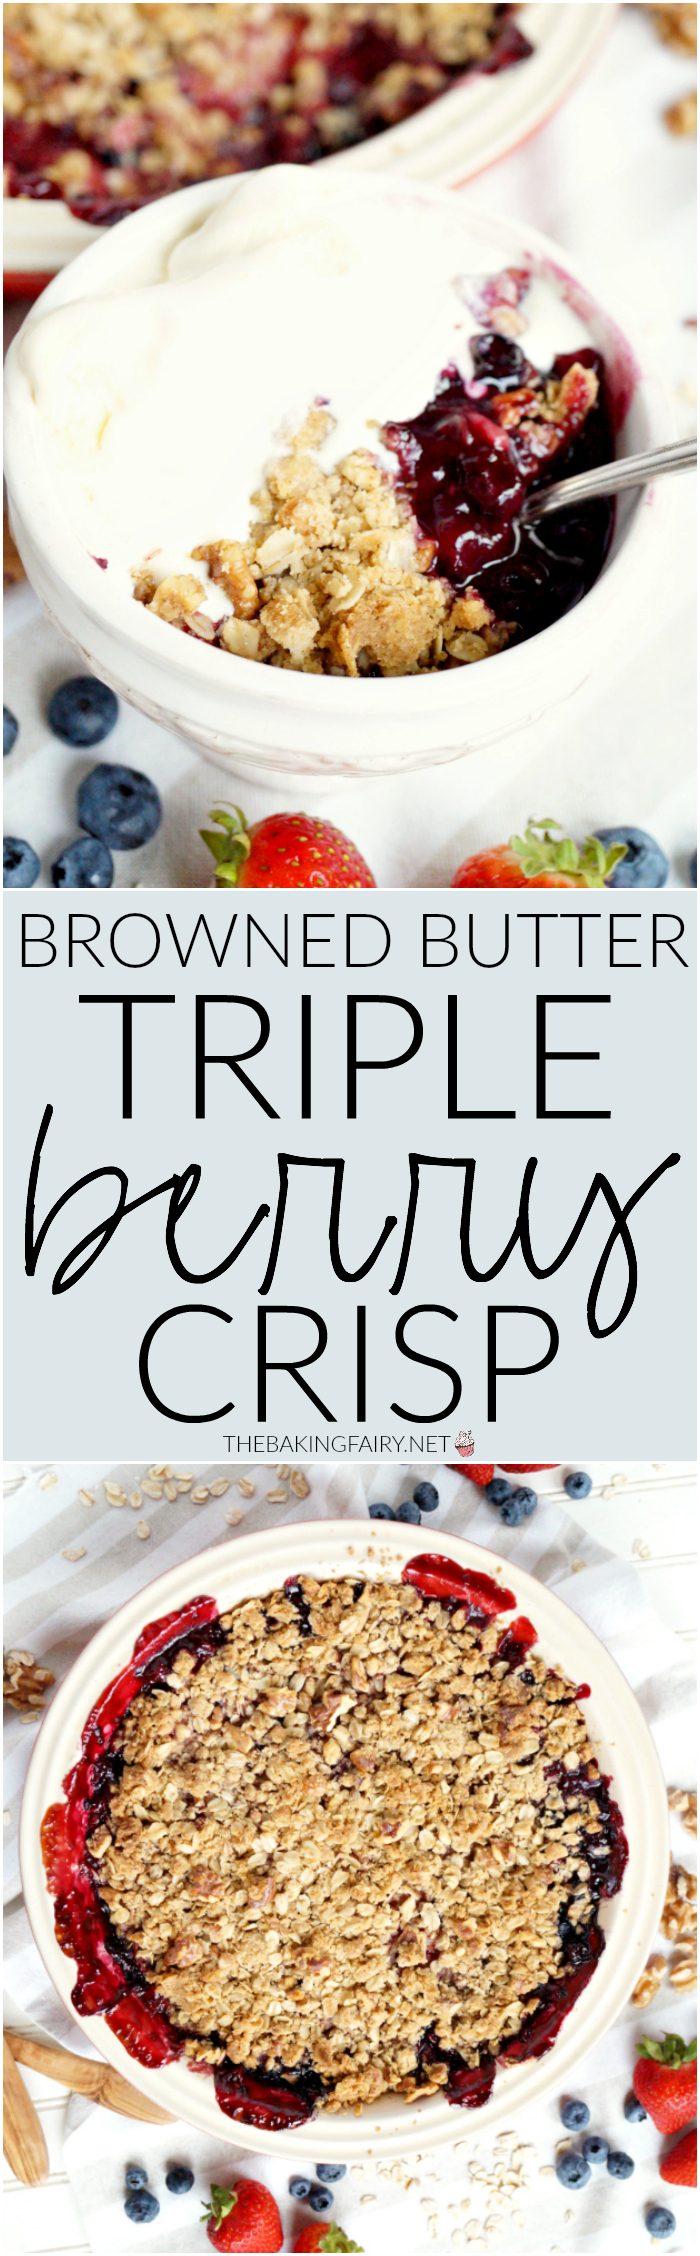 browned butter triple berry crisp | The Baking Fairy